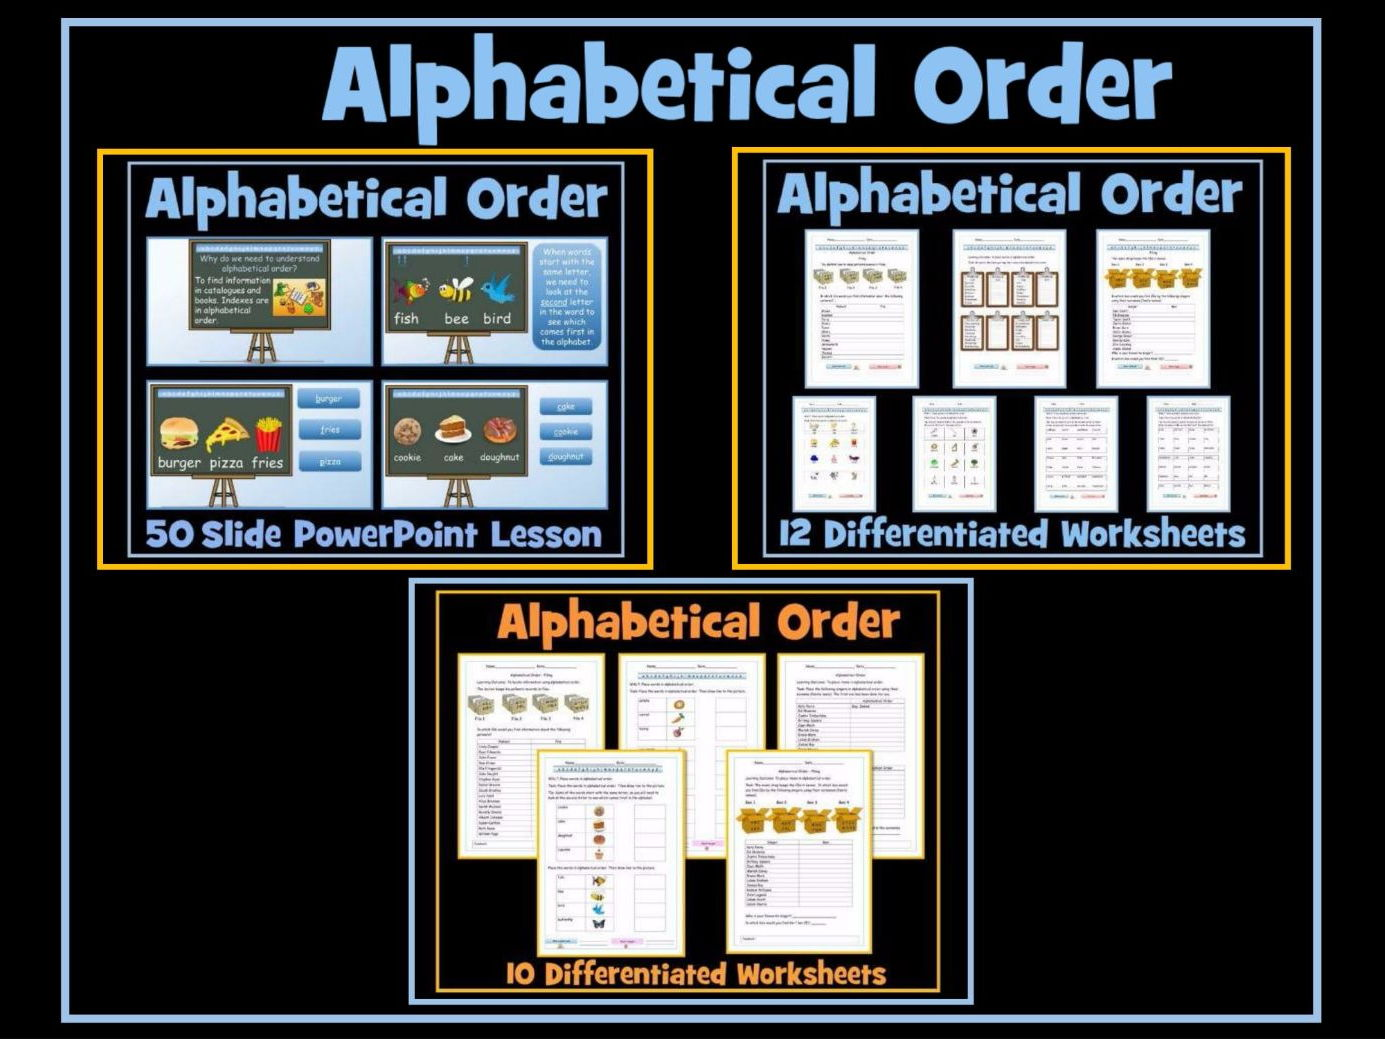 Alphabetical Order - 50 Slide PowerPoint Lesson -  Set of 22 Diffferentiated Worksheets